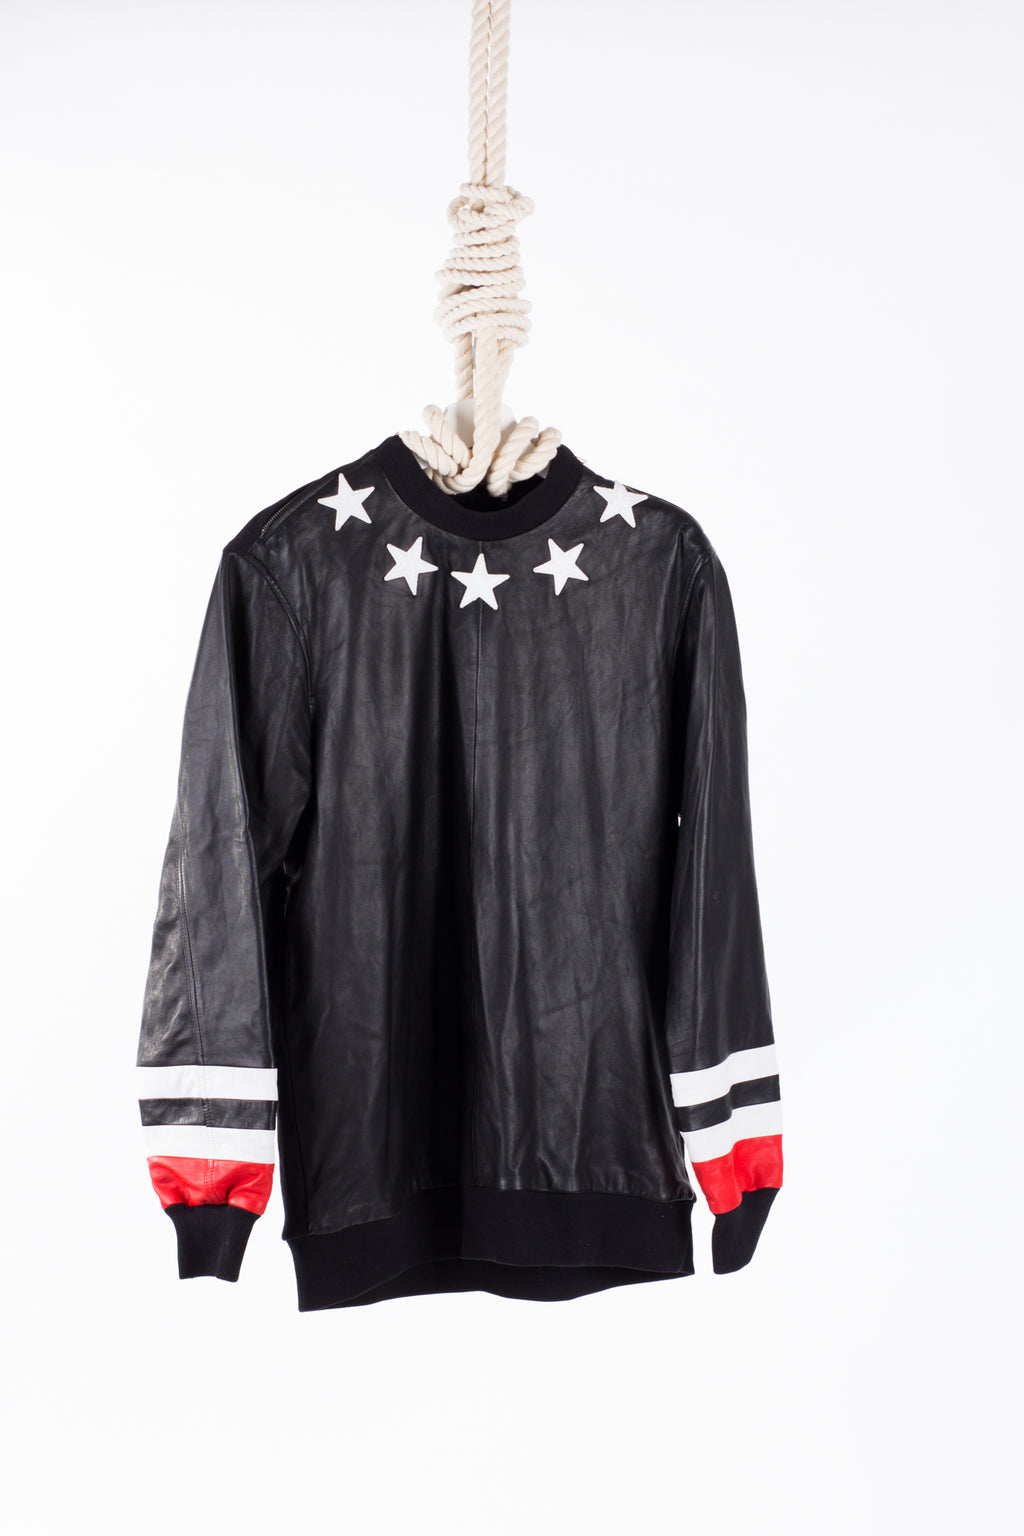 Givenchy Men's Black Stars Leather Jumper